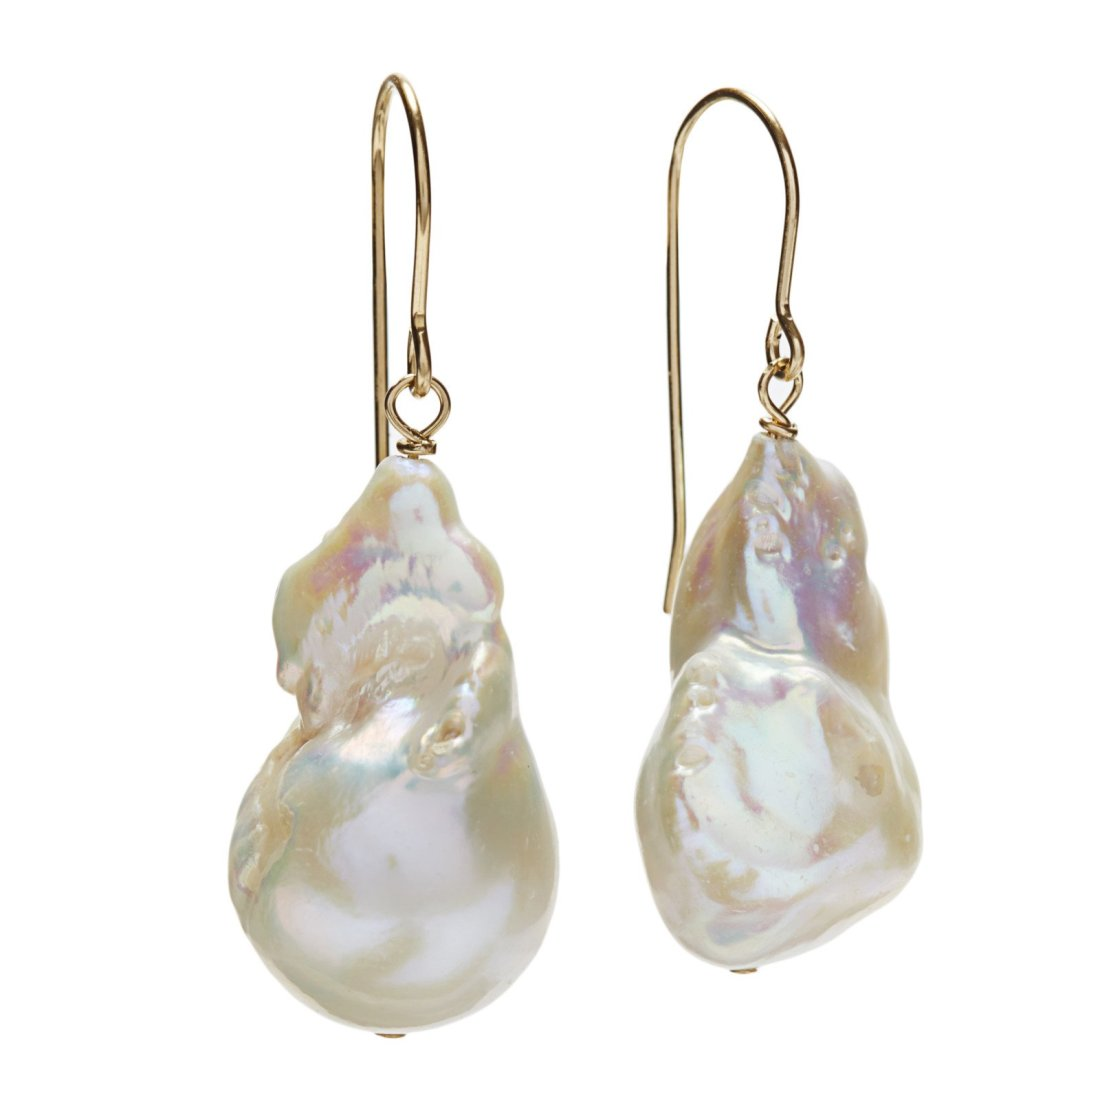 In2Design Baroque Pearl Drop Earrings in gold